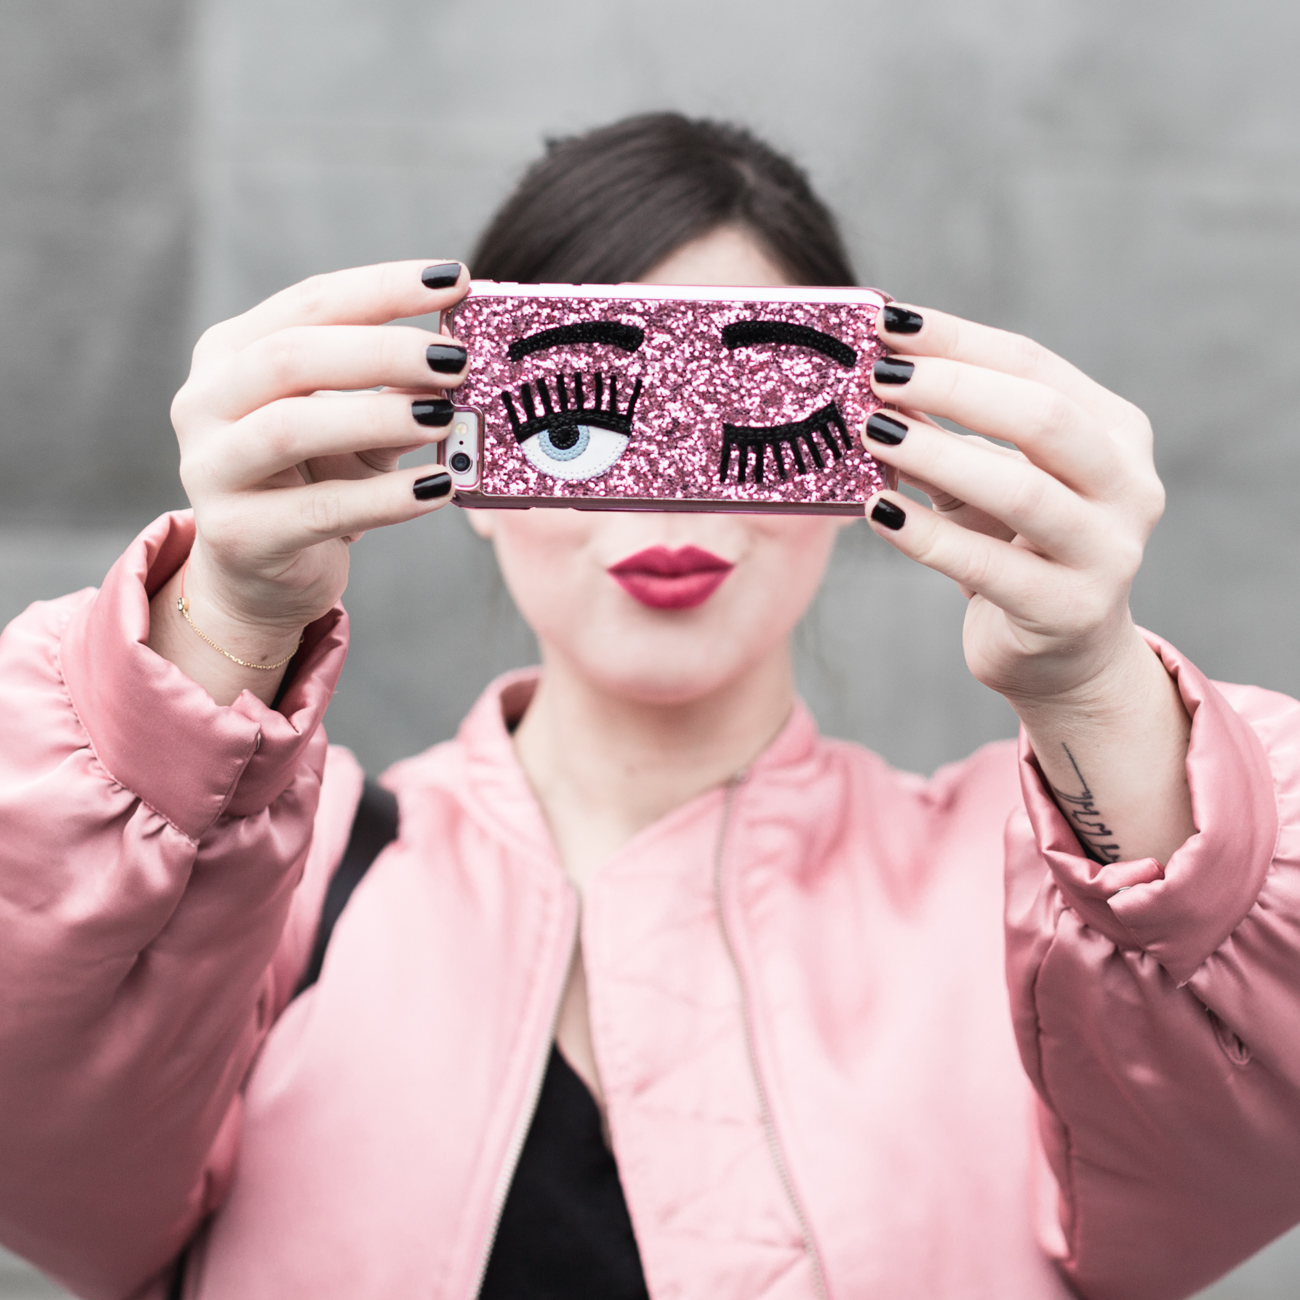 chiara ferragni shoes glitter iphone case 1300 - copyright Pauline paulinefashionblog.com-1